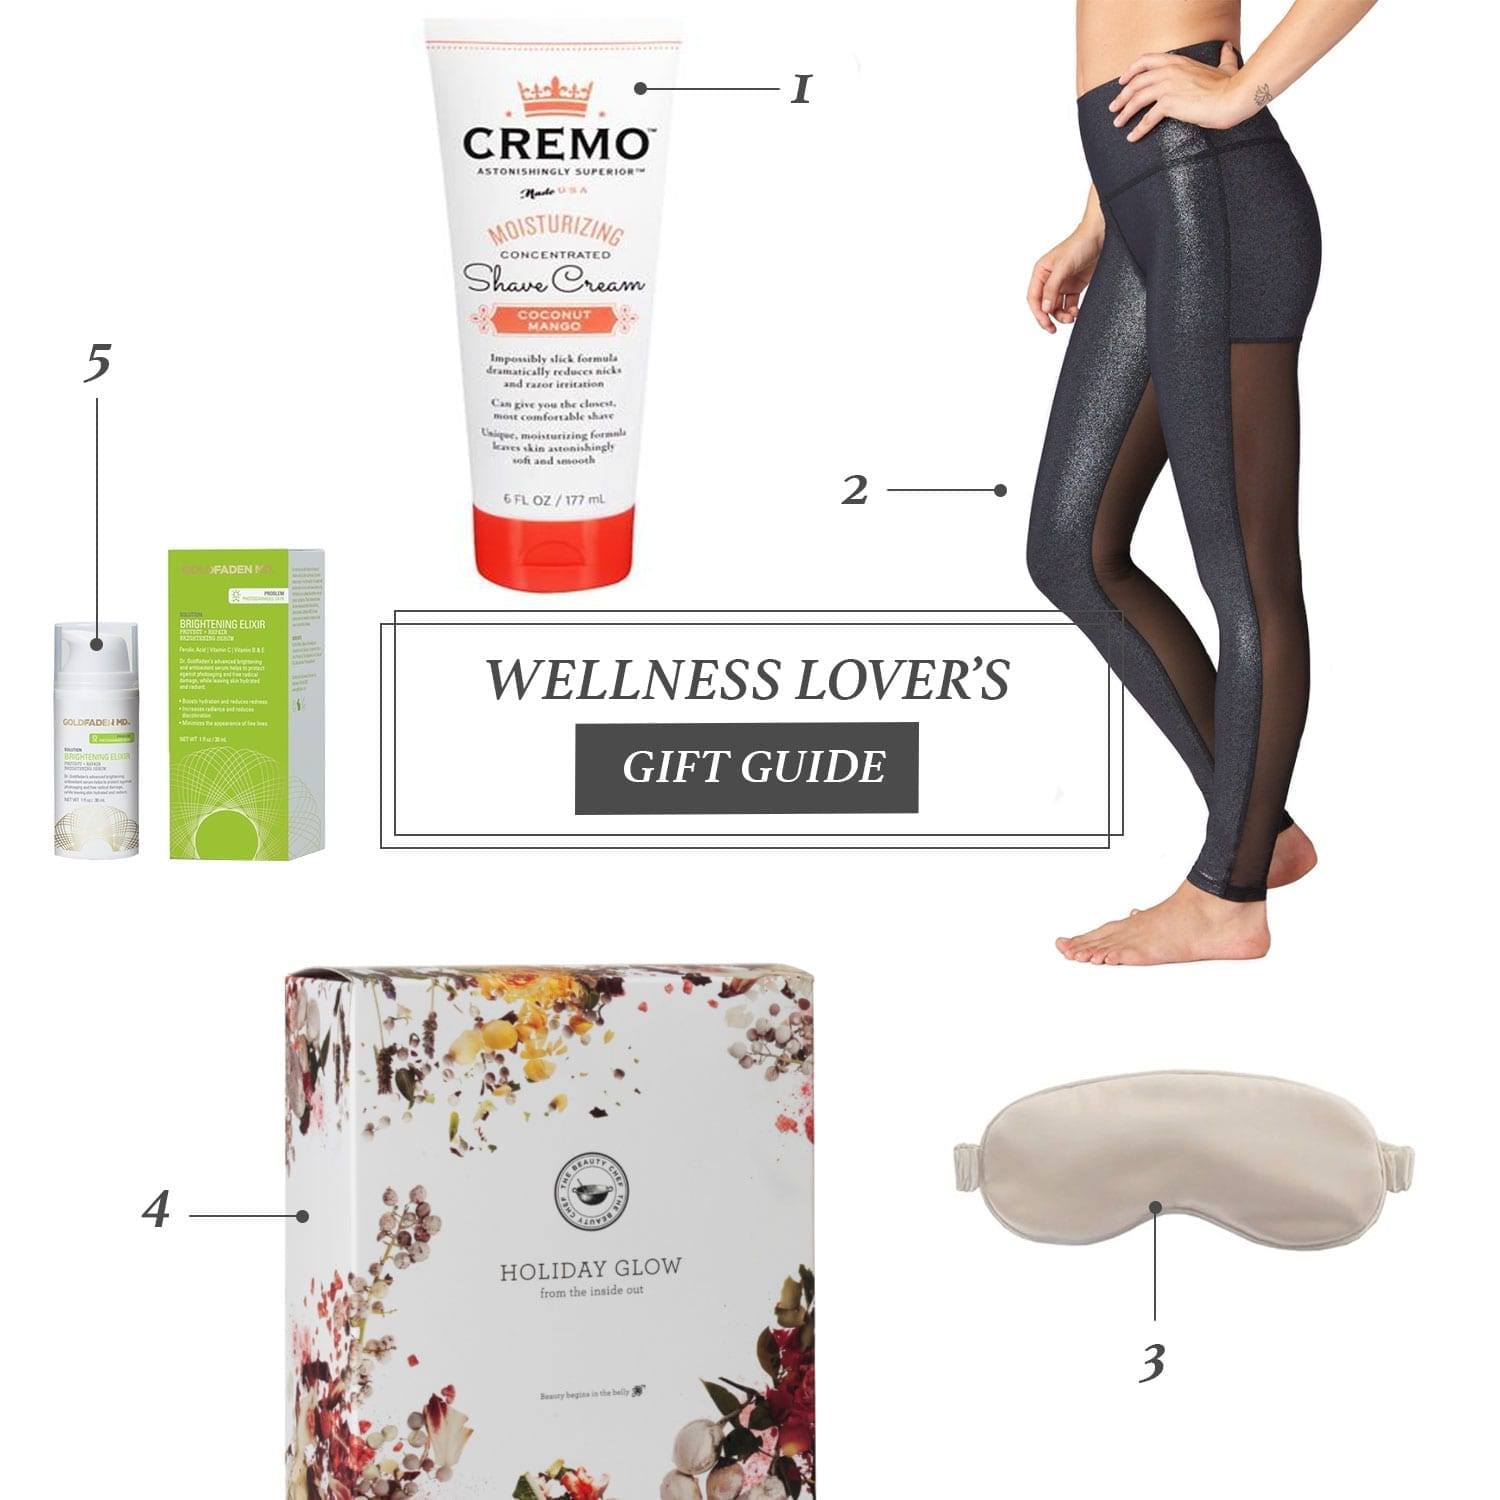 wellnessloversgiftguide_new